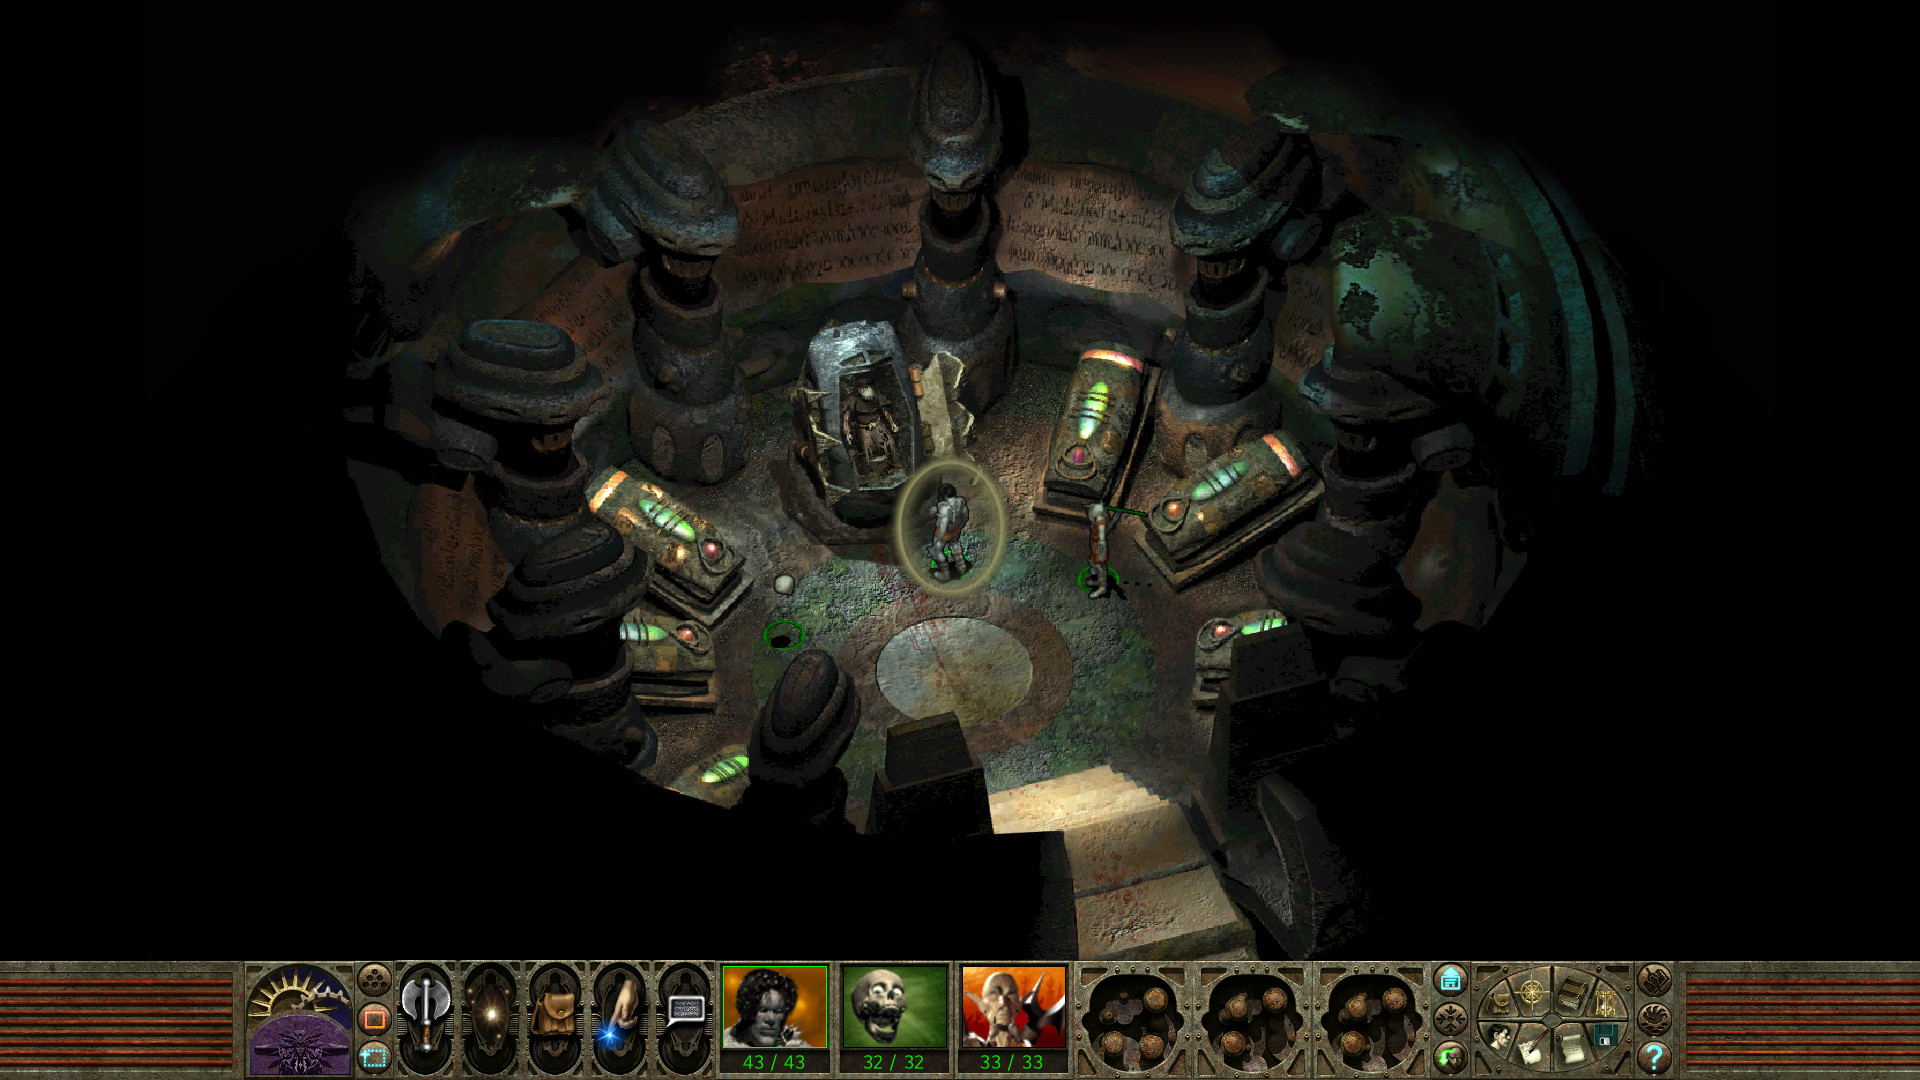 A screenshot from Planescape: Torment showing the main character standing in a mysterious room, looking at a scientific pod holding an unknown figure